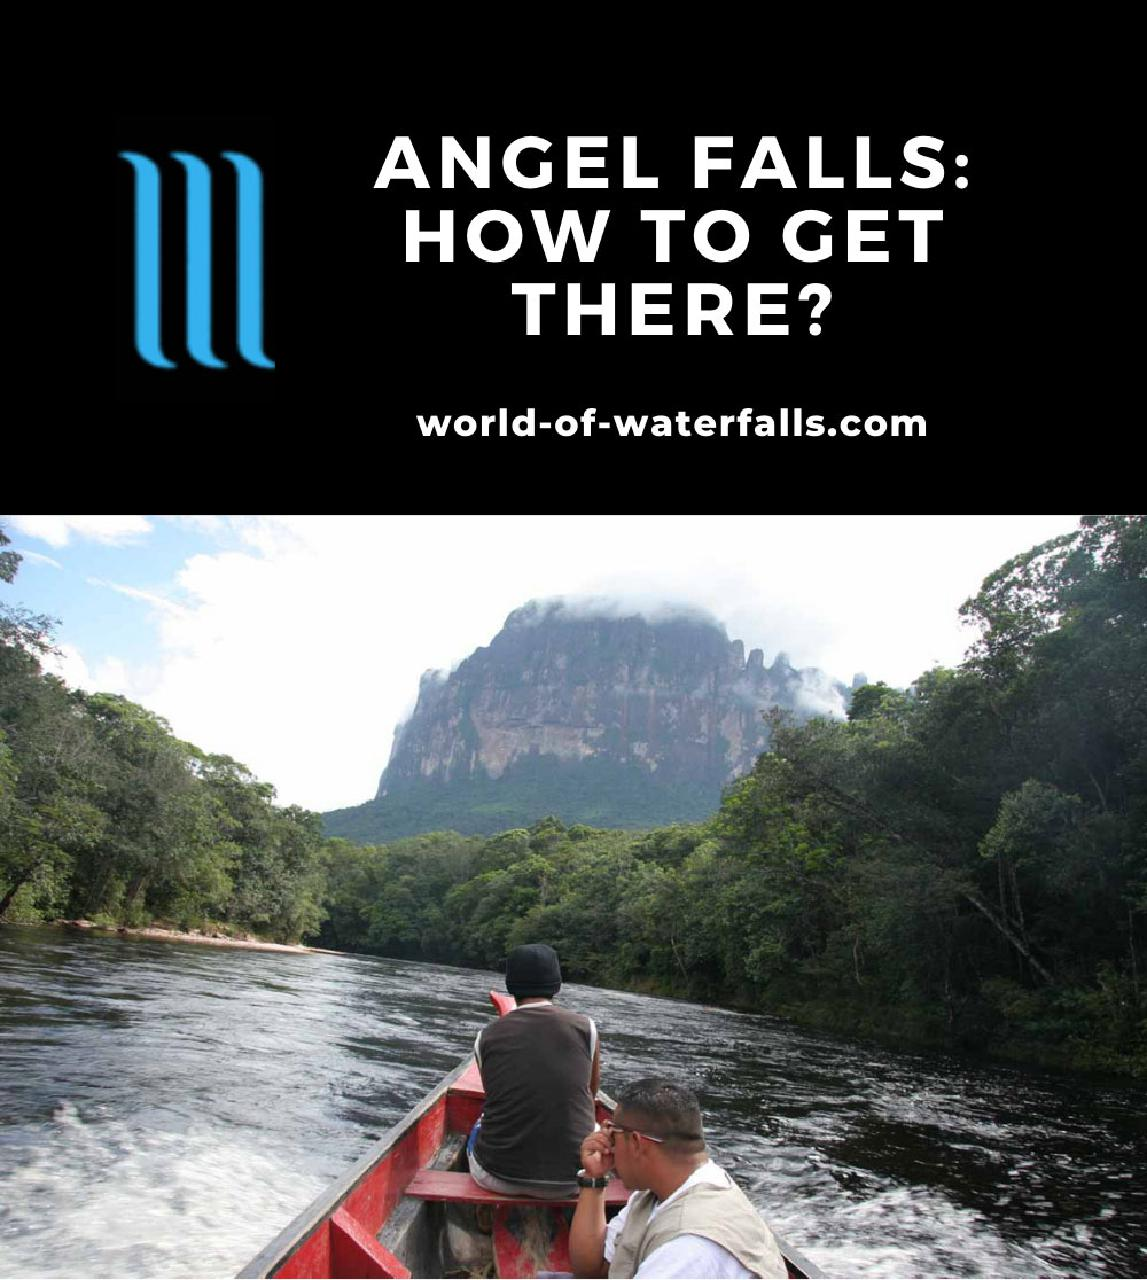 Angel Falls: How To Get There?